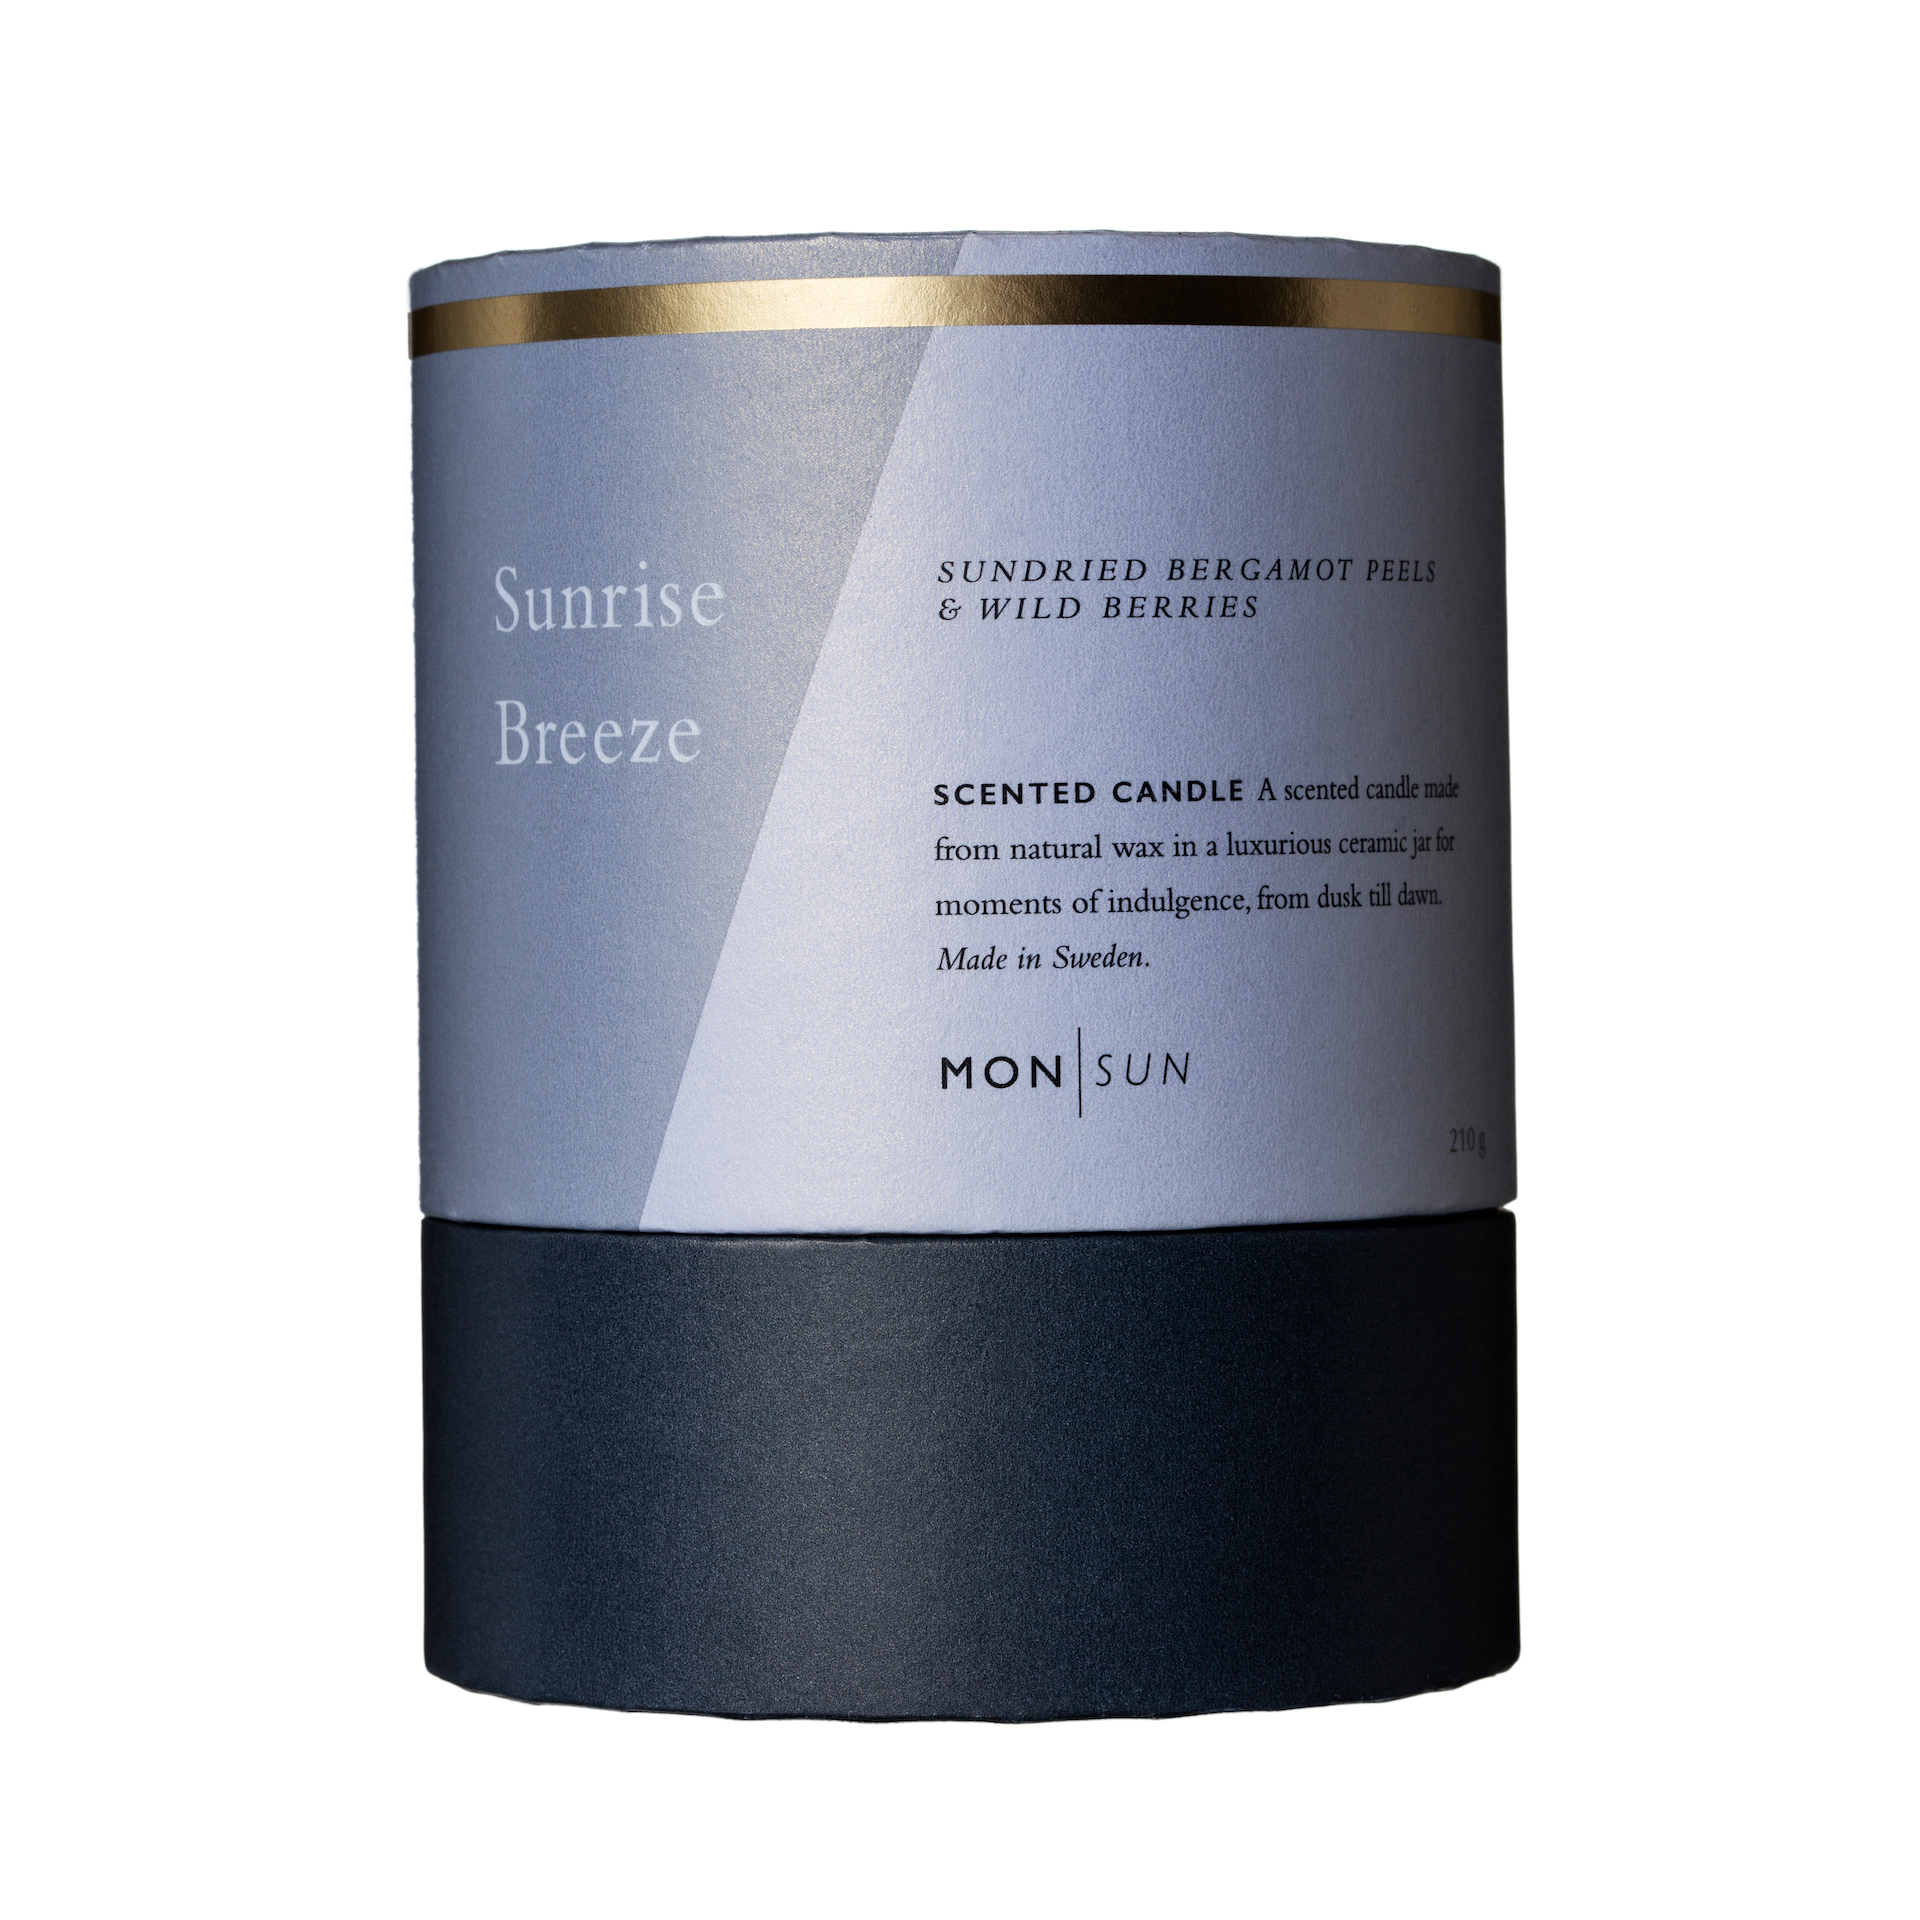 Sunrise Breeze Mineral & Moist Scented Candle 210 g